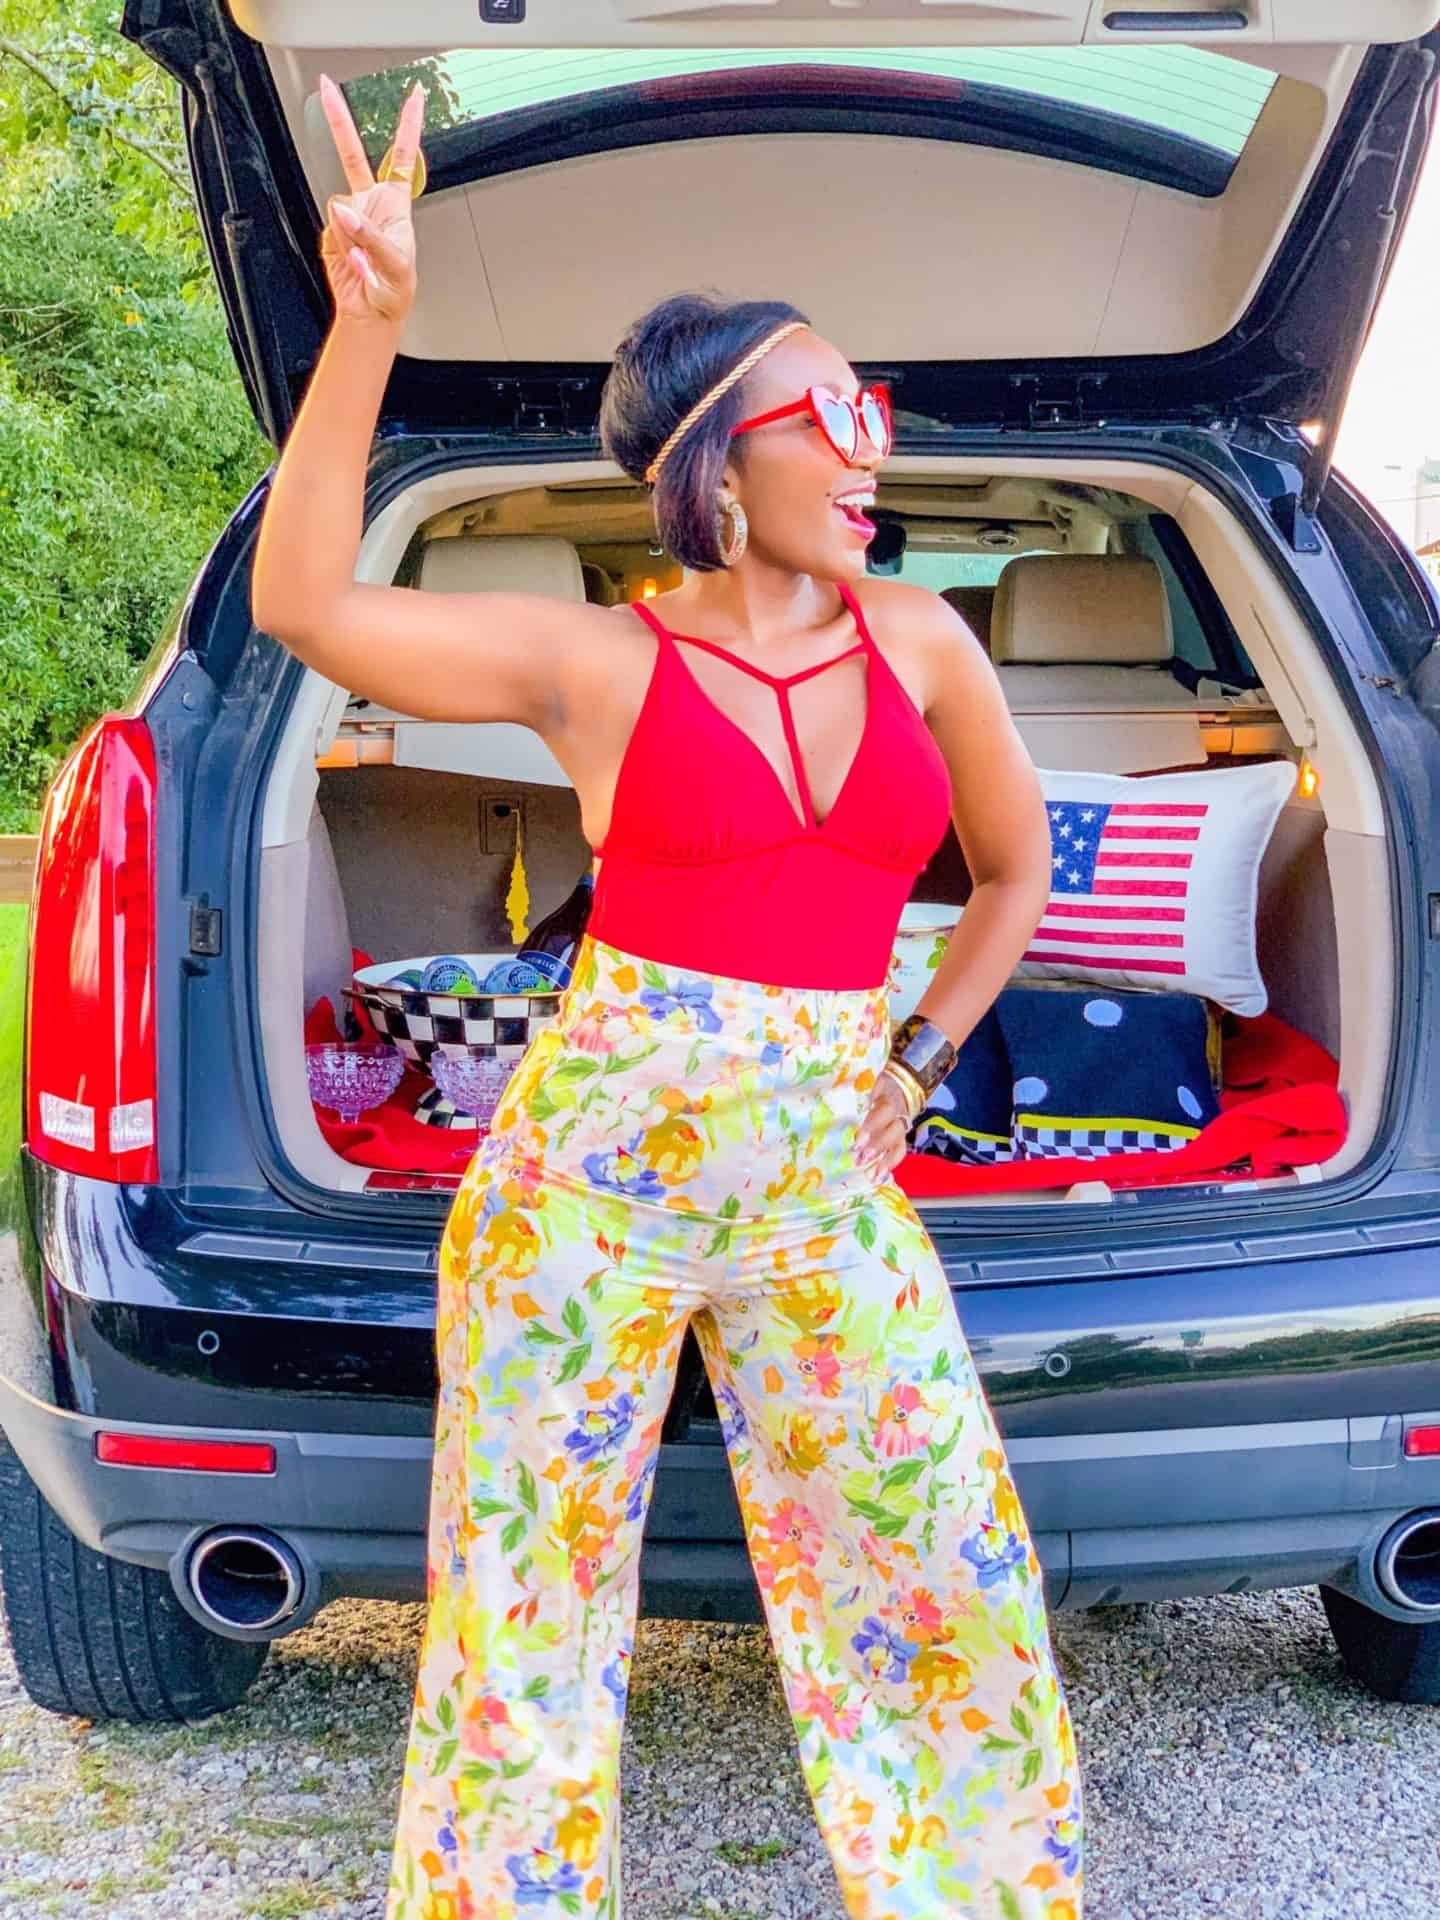 Shaunda Necole Work Hard & Play Harder On Holiday Weekends With Cadillac By The Shore + 5 Different Beaches, Vibrant Patterns, 70's Groove- MacKenzie-Childs Flower Market- Flower Child